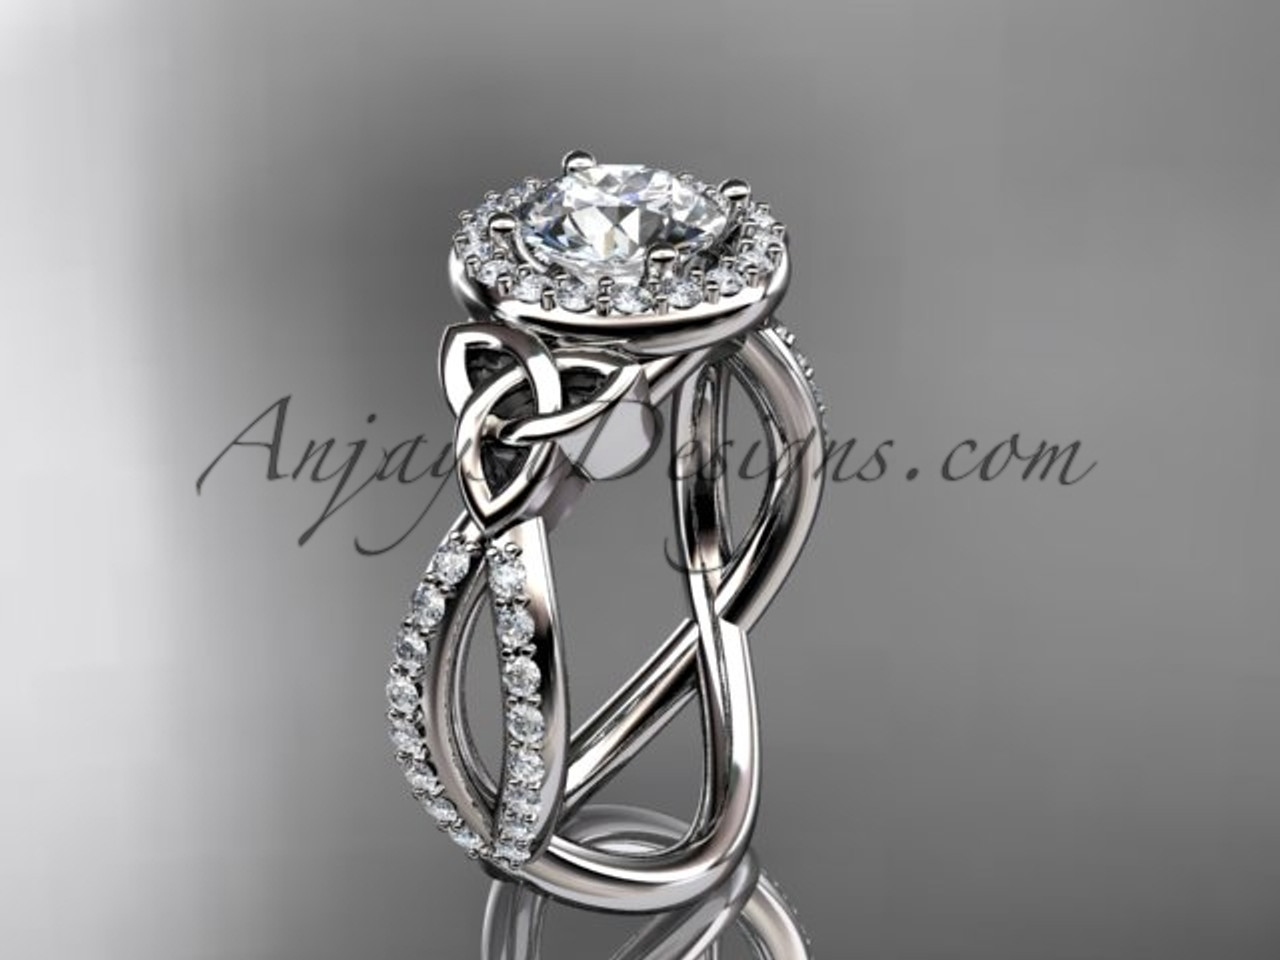 Irish Wedding Rings.14kt White Gold Diamond Celtic Trinity Ring Triquetra Ring Irish Engagement Ring Ct7374